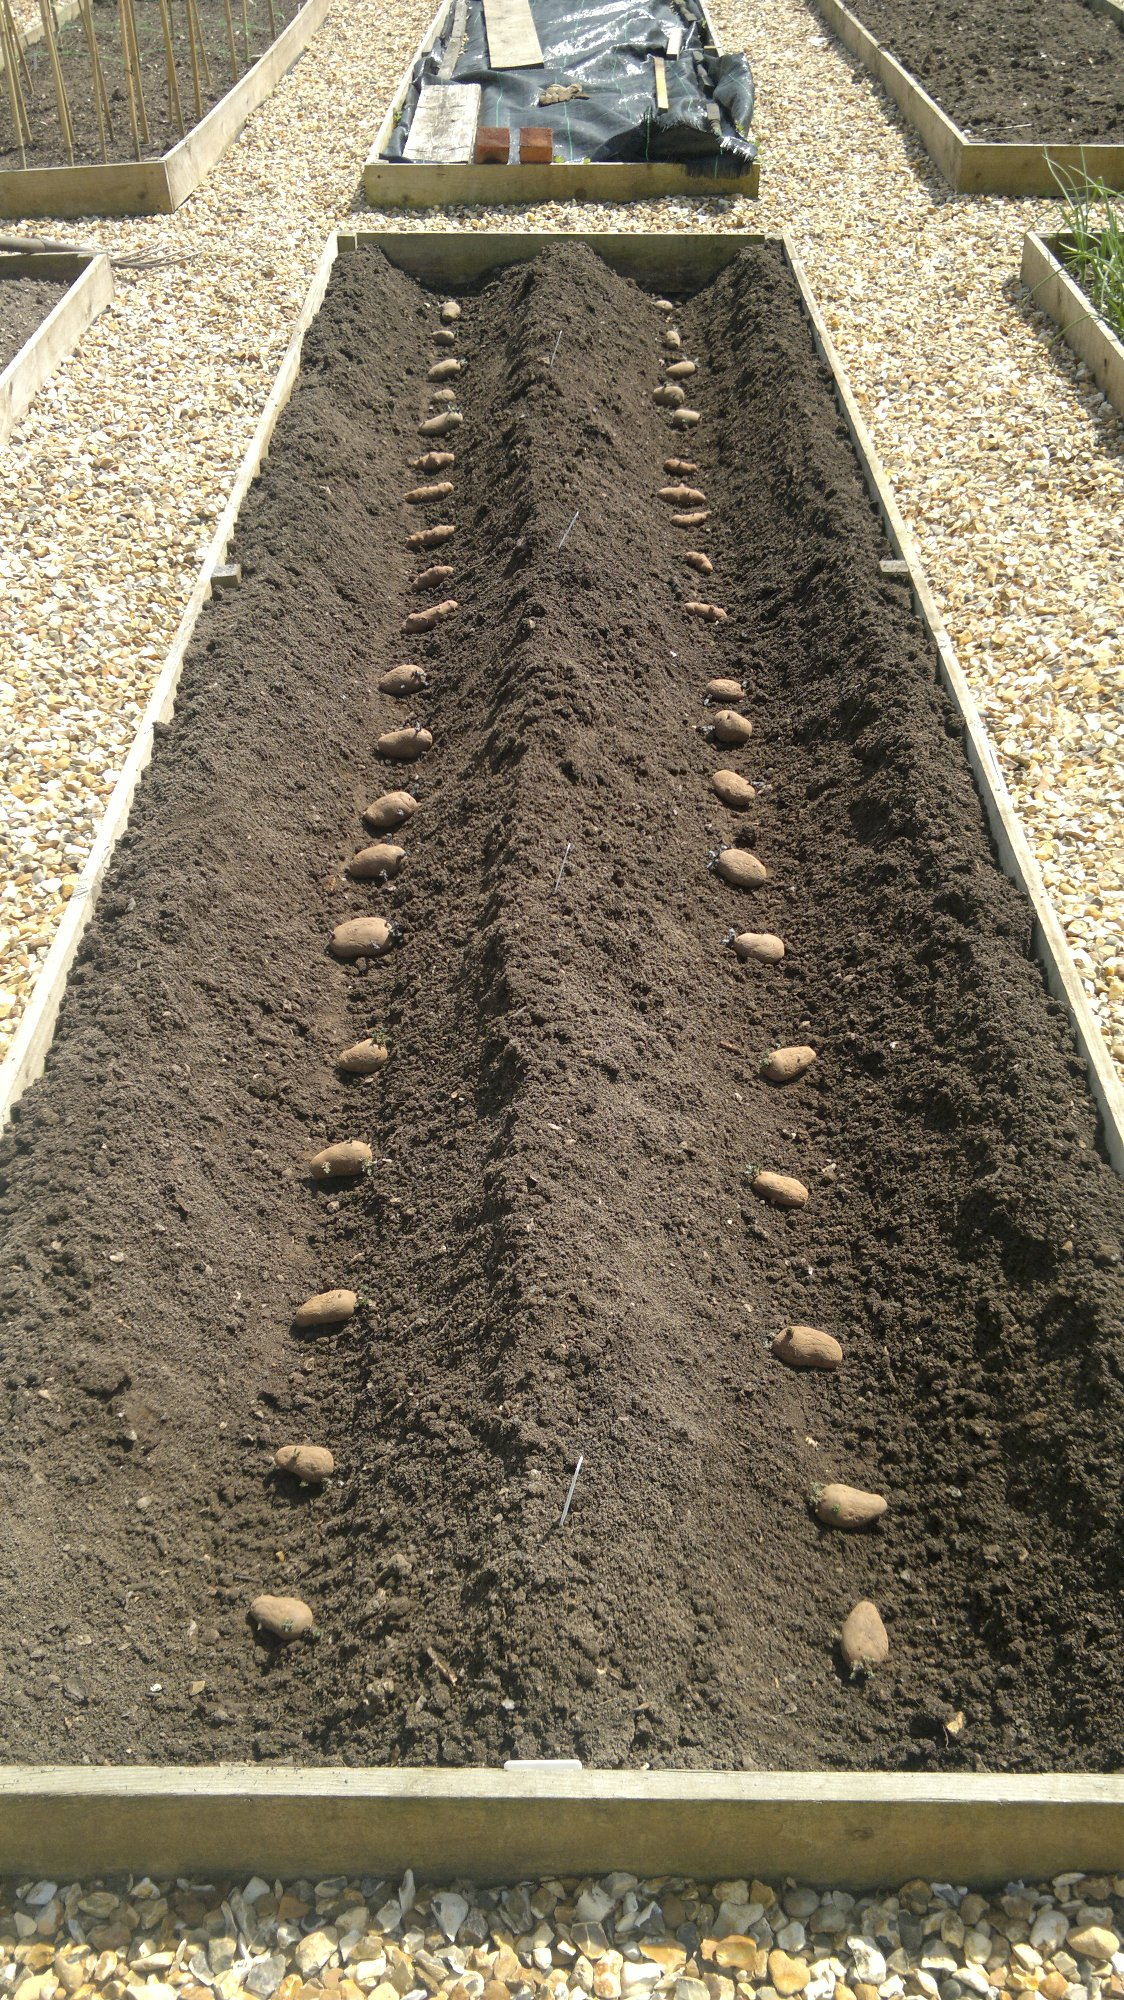 Potato bed prepared for planting